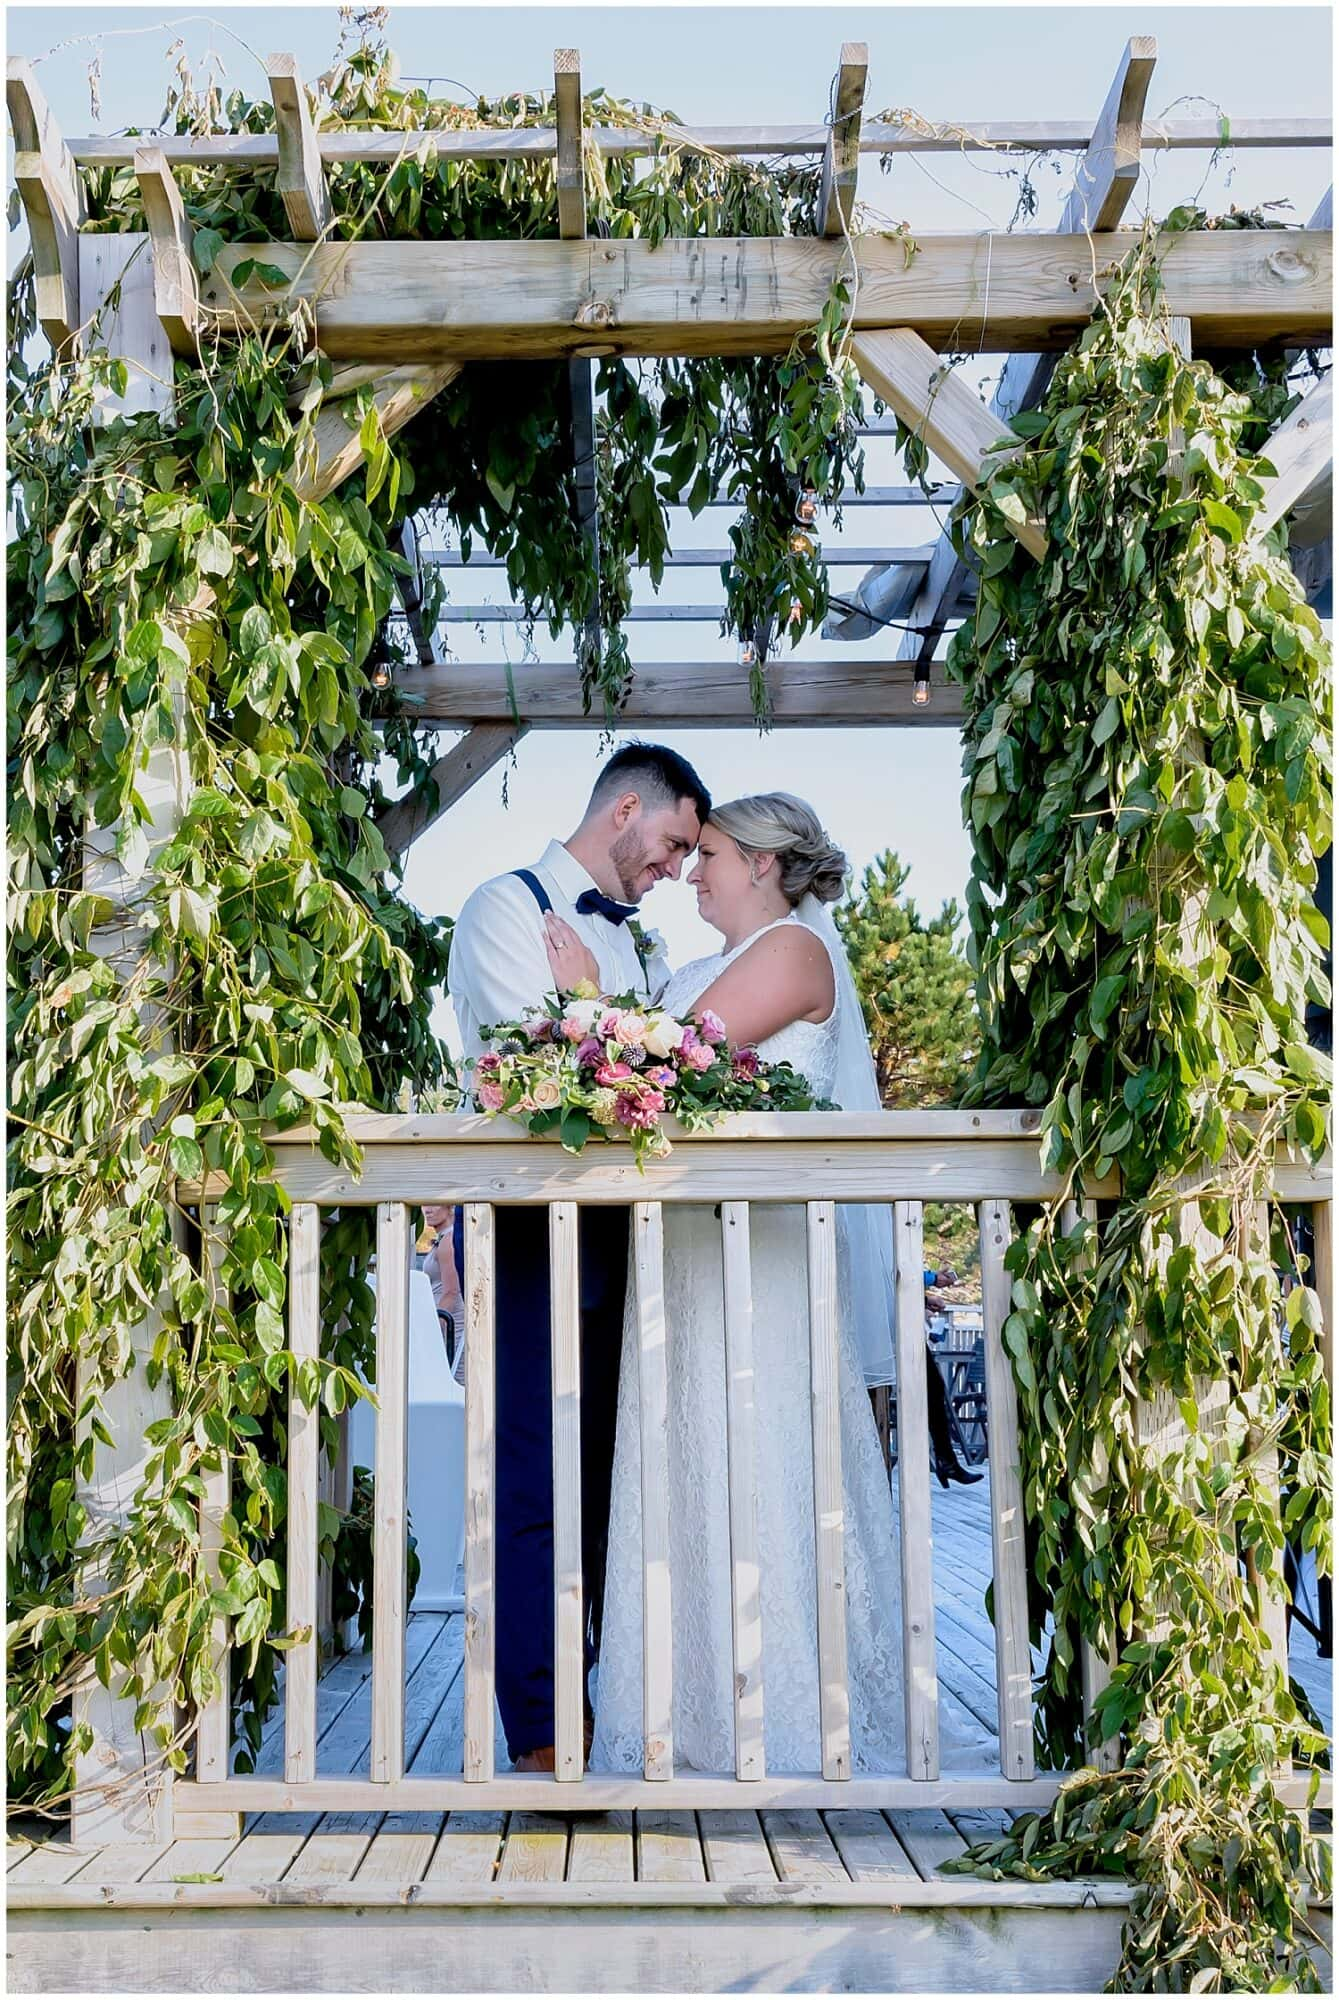 The bride and groom pose for wedding photos among the veins on the balcony at the Barn at Sadie Belle Farm in NS.